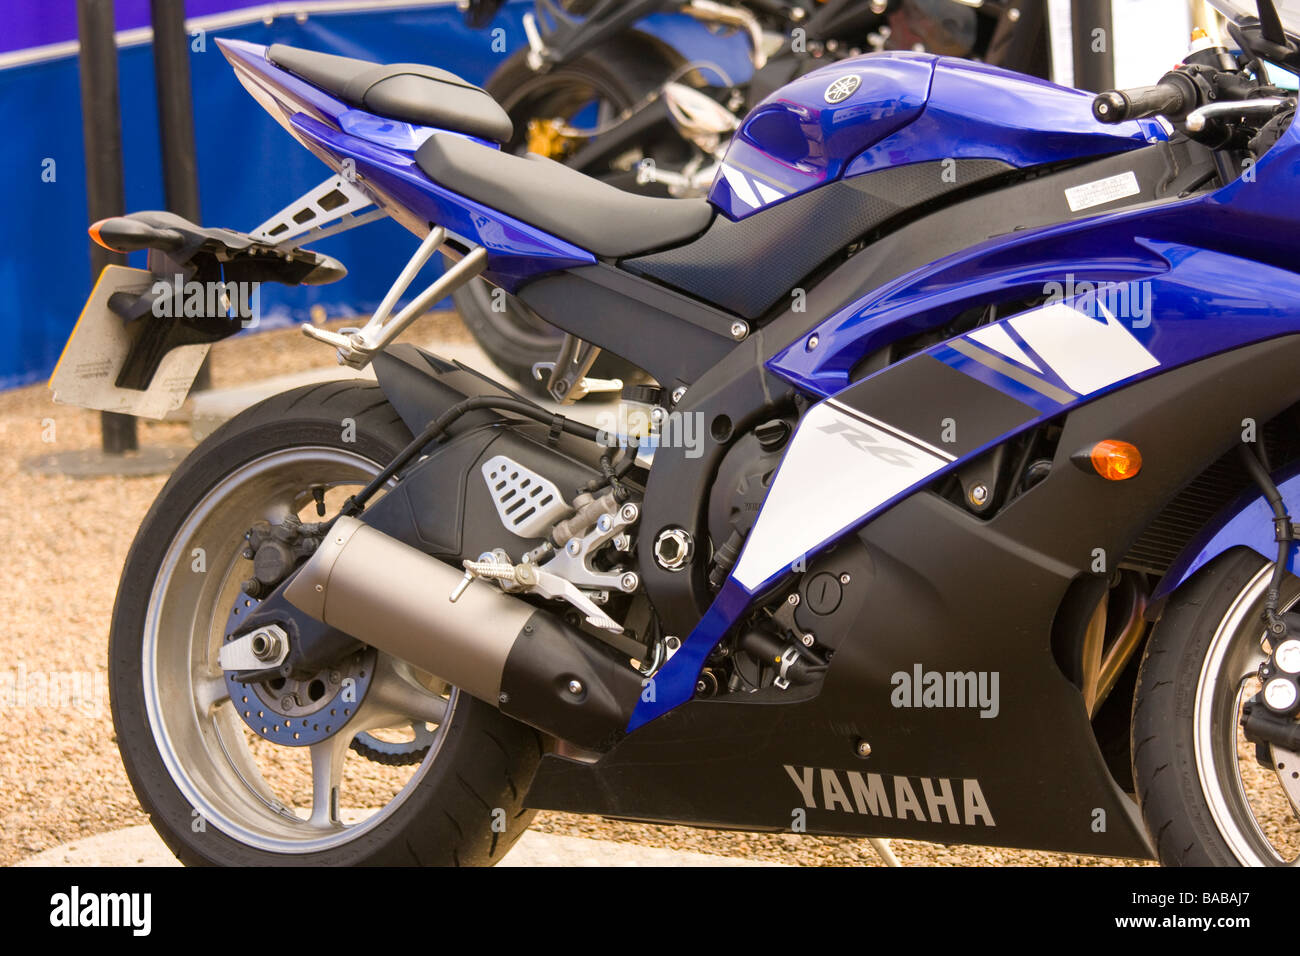 Yamaha Bike side view - Stock Image